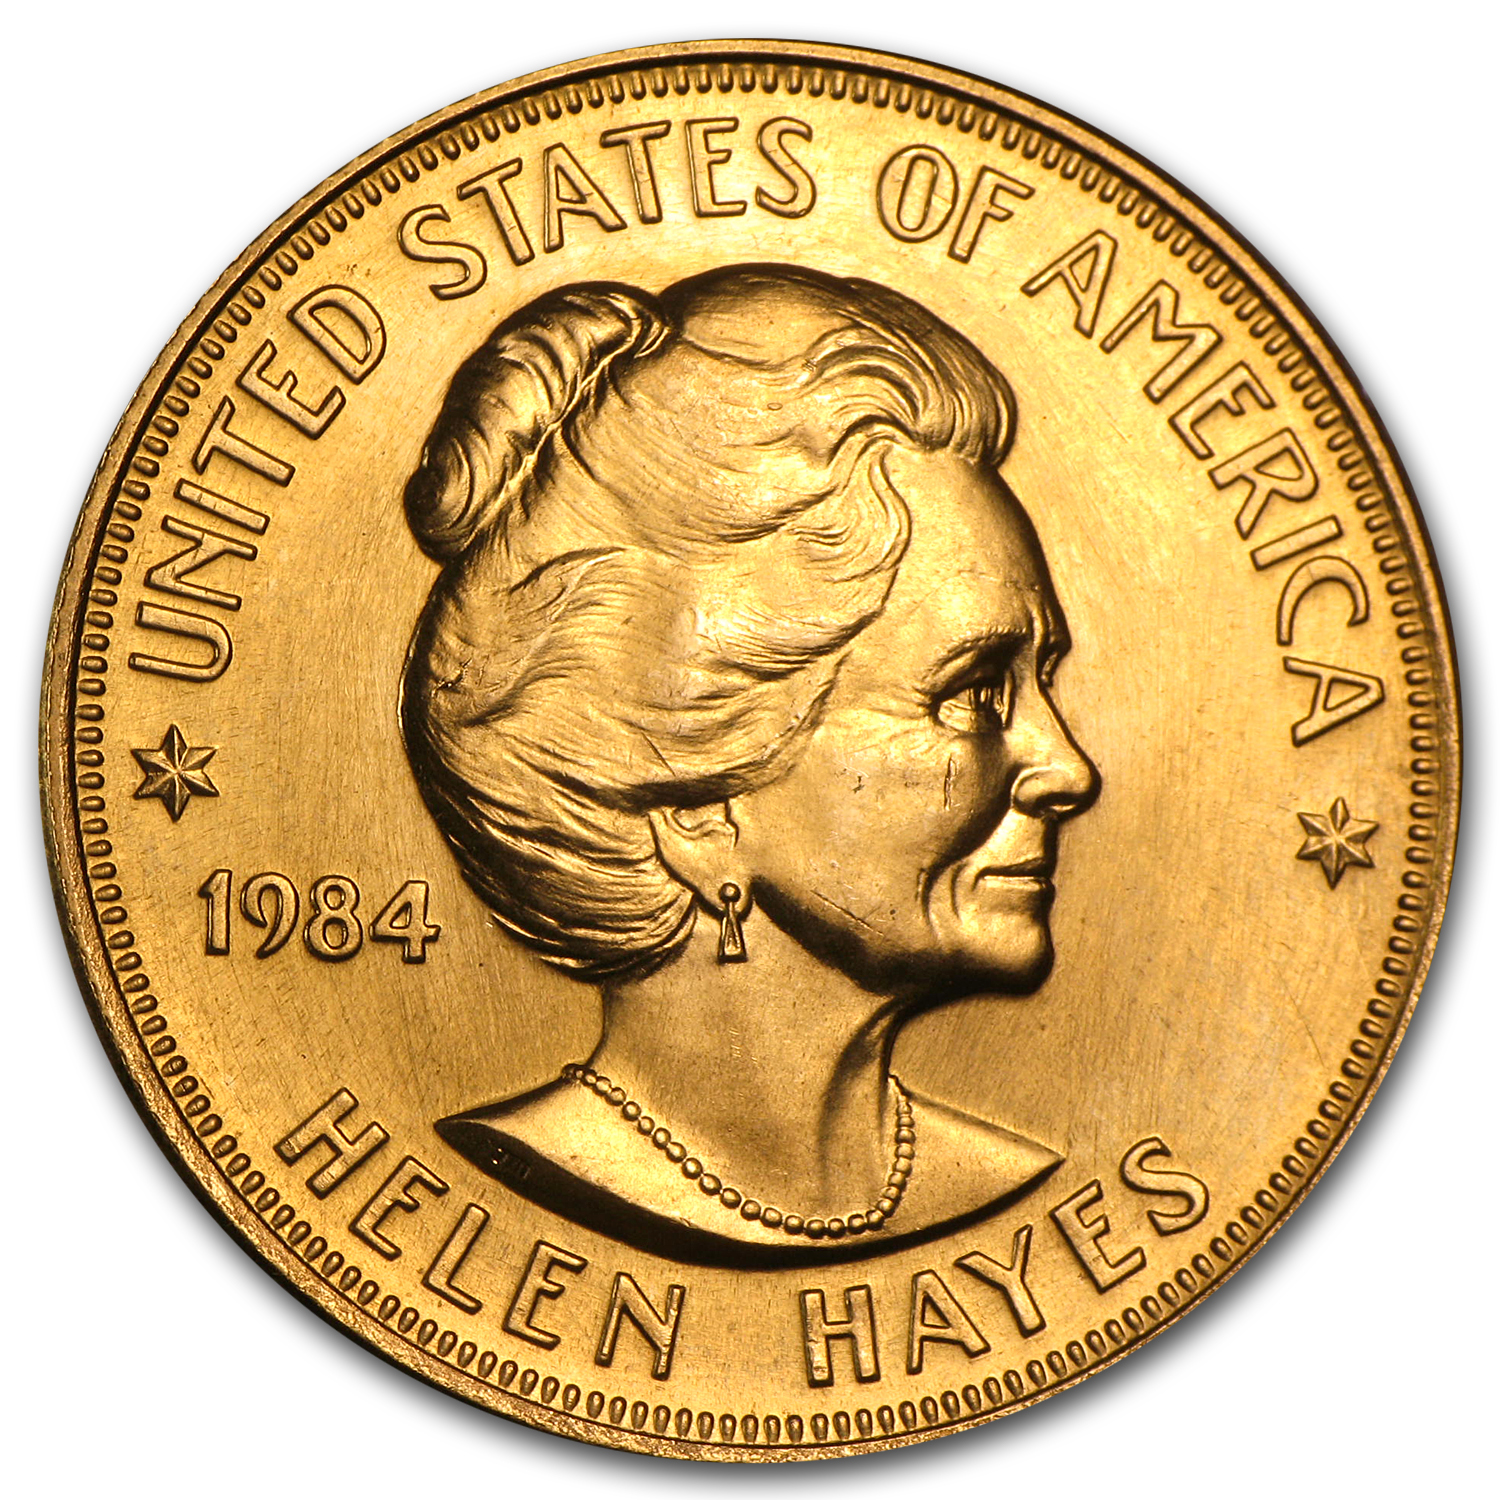 U.S. Mint 1 oz Gold Commemorative Arts Medal Helen Hayes